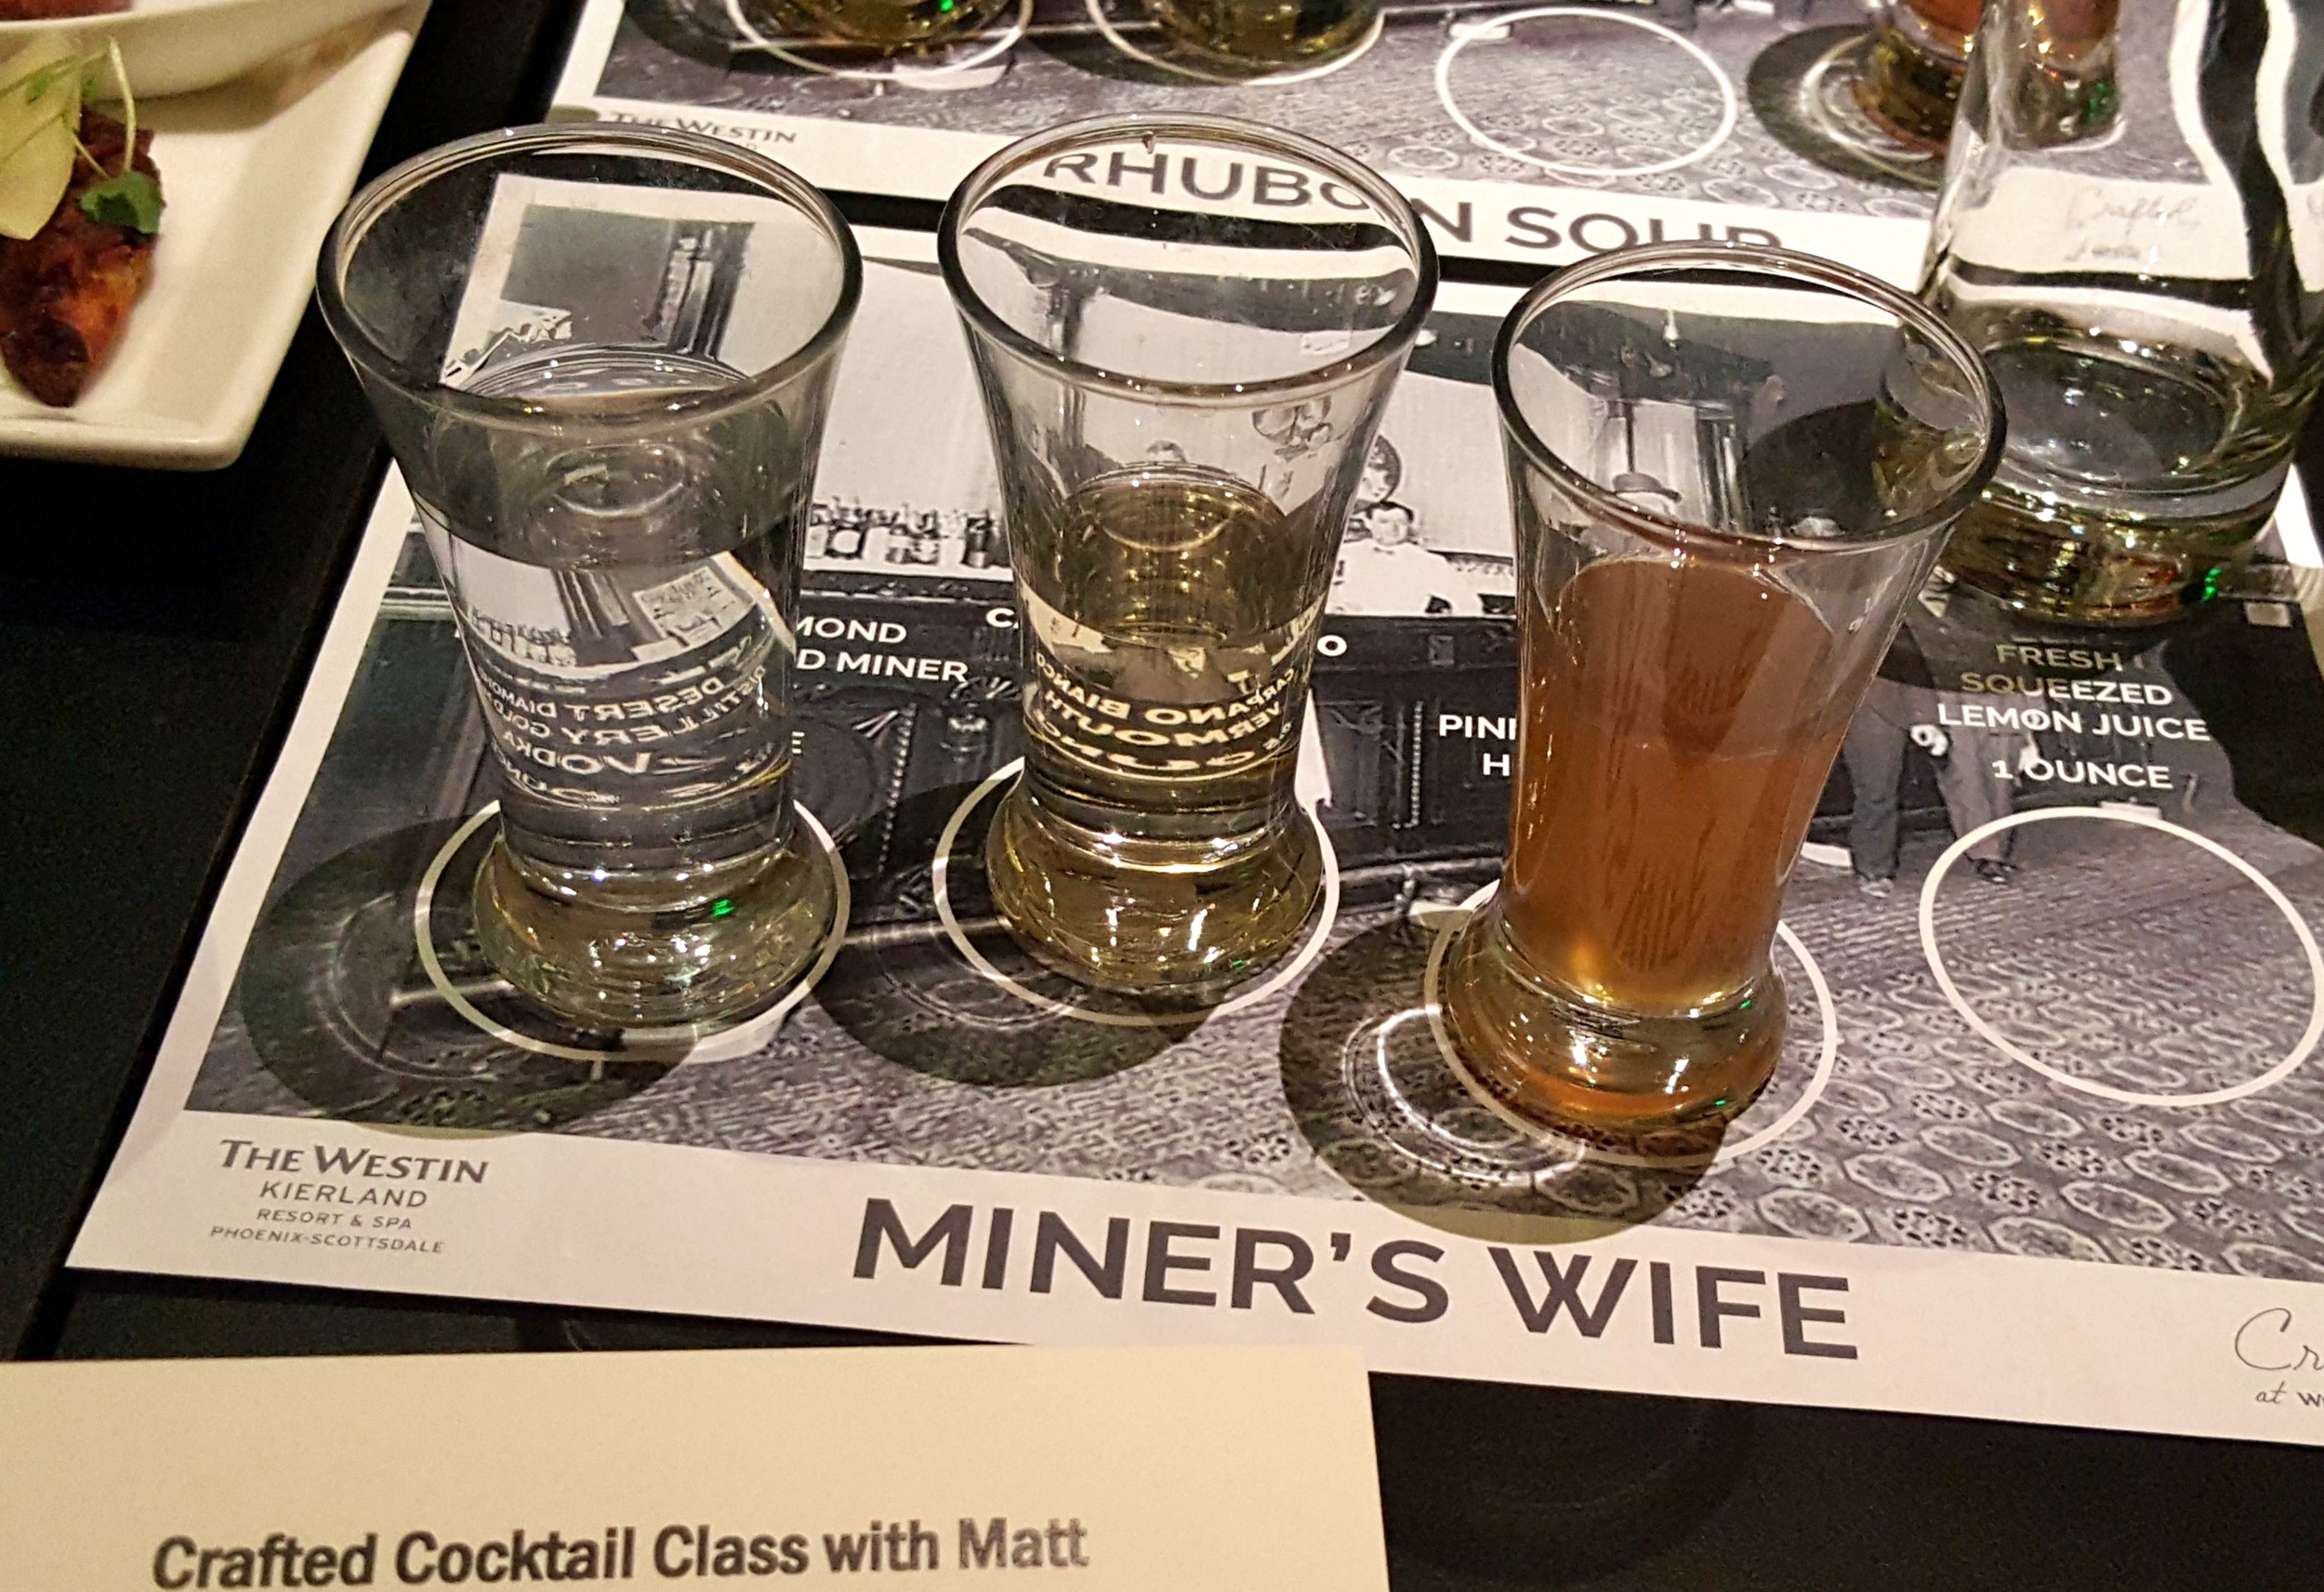 Miner's Wife cocktail